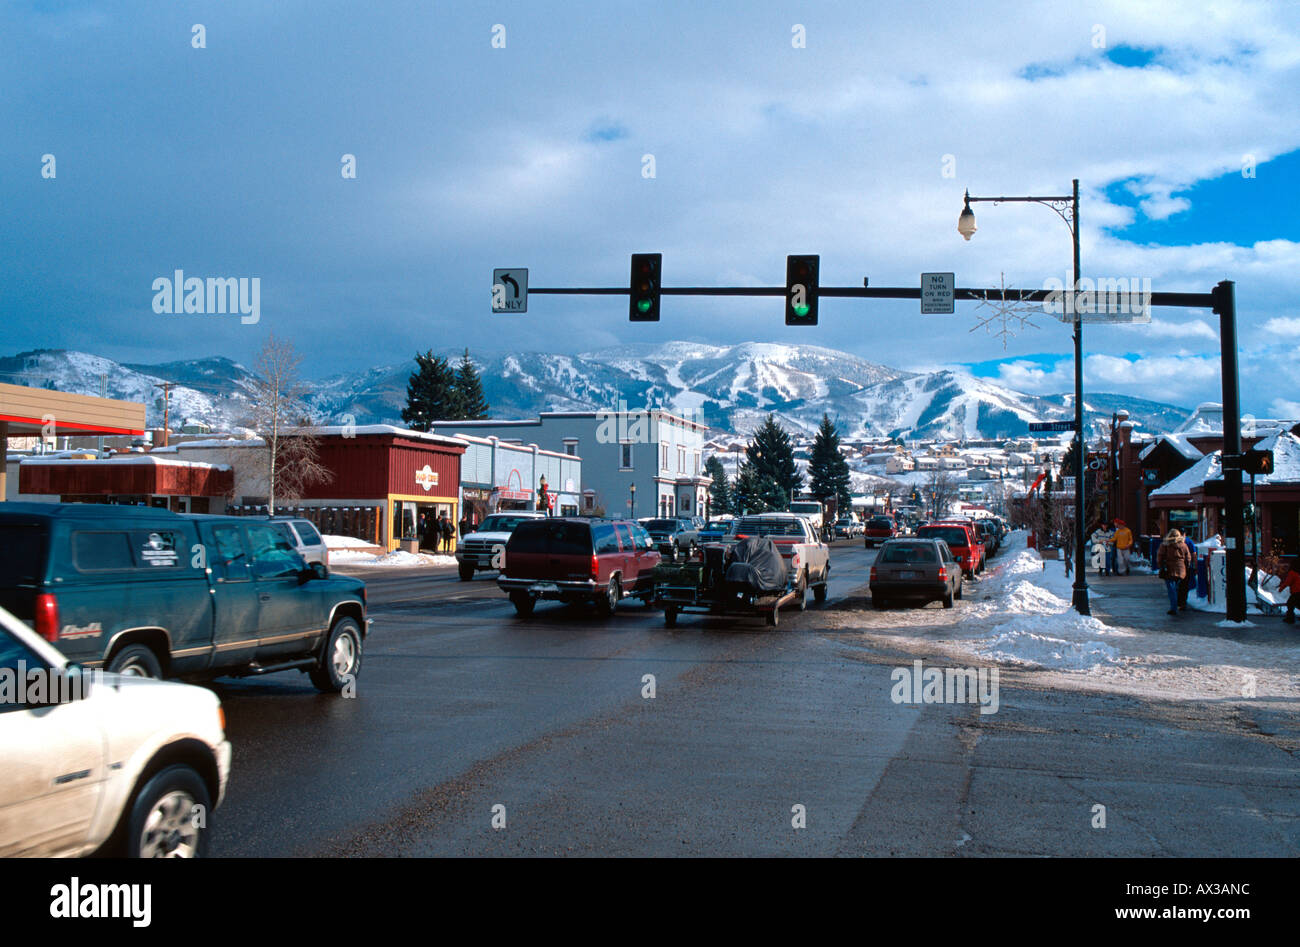 Traffic on Lincoln Avenue (US Hwy 40) in Steamboat Springs